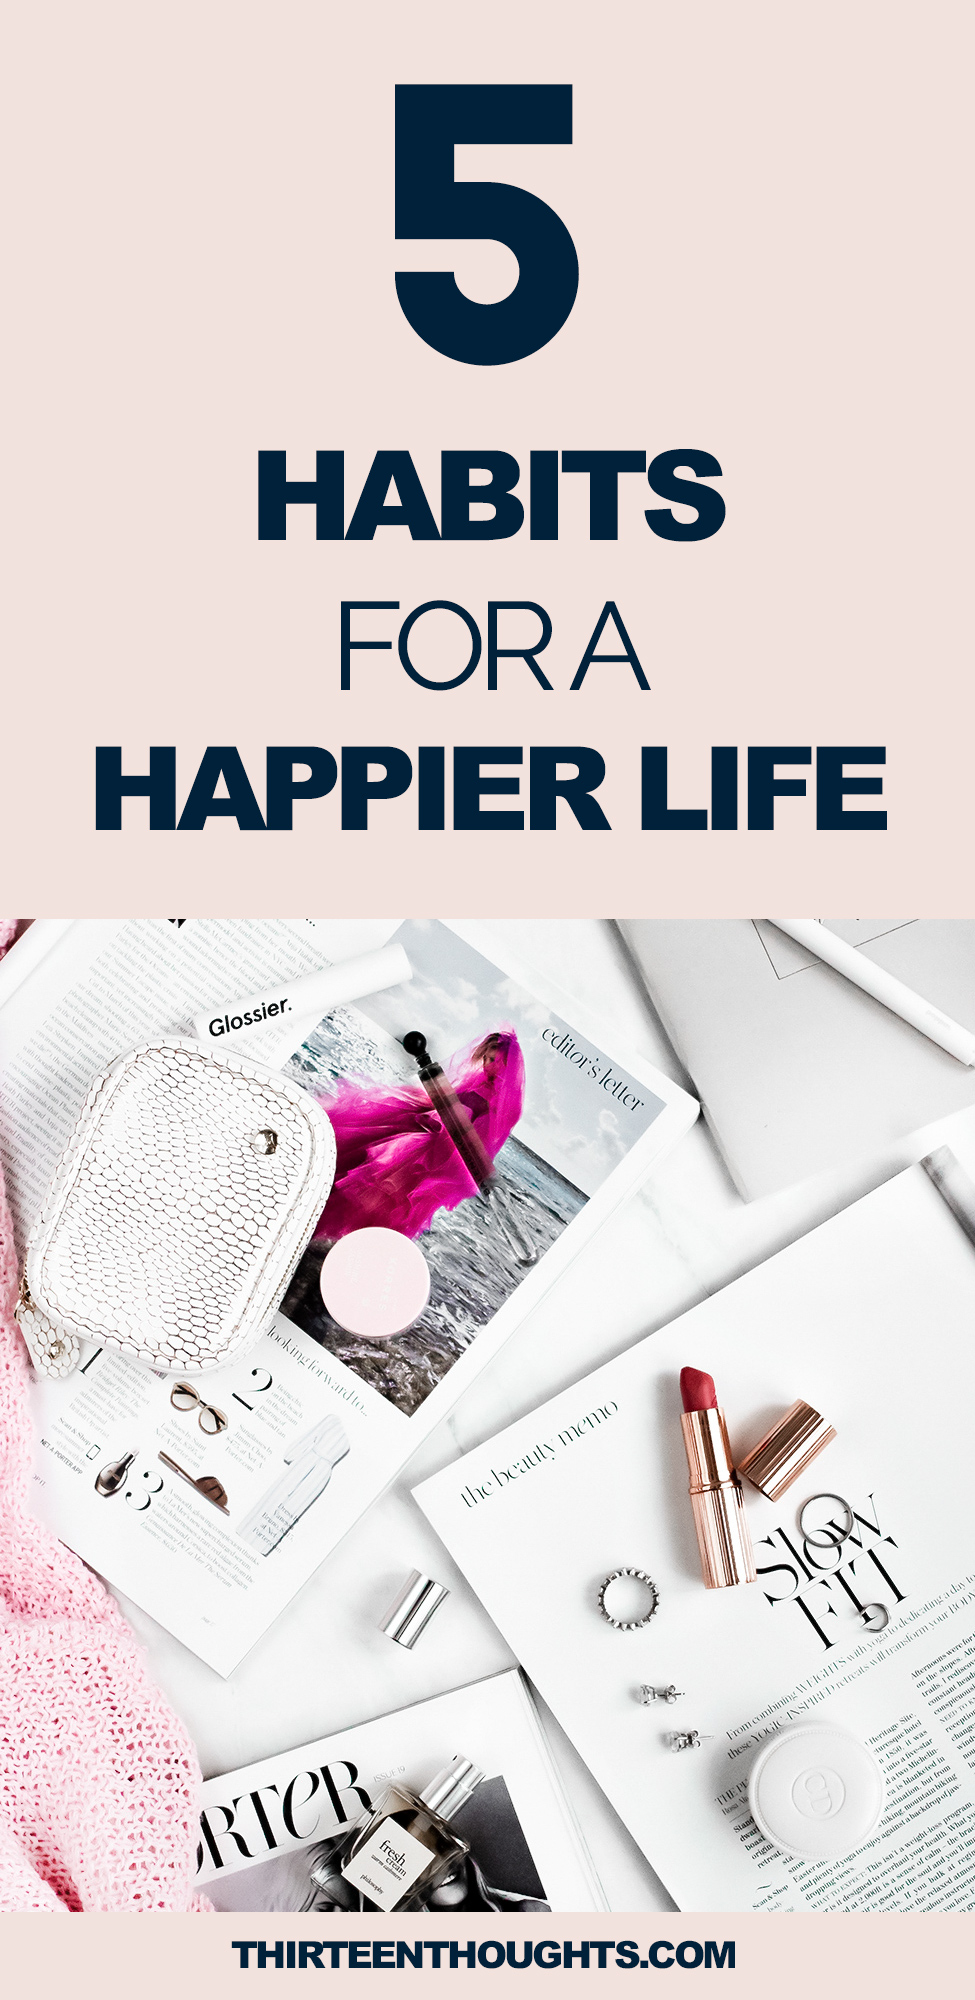 5 Habits for a Happier Life